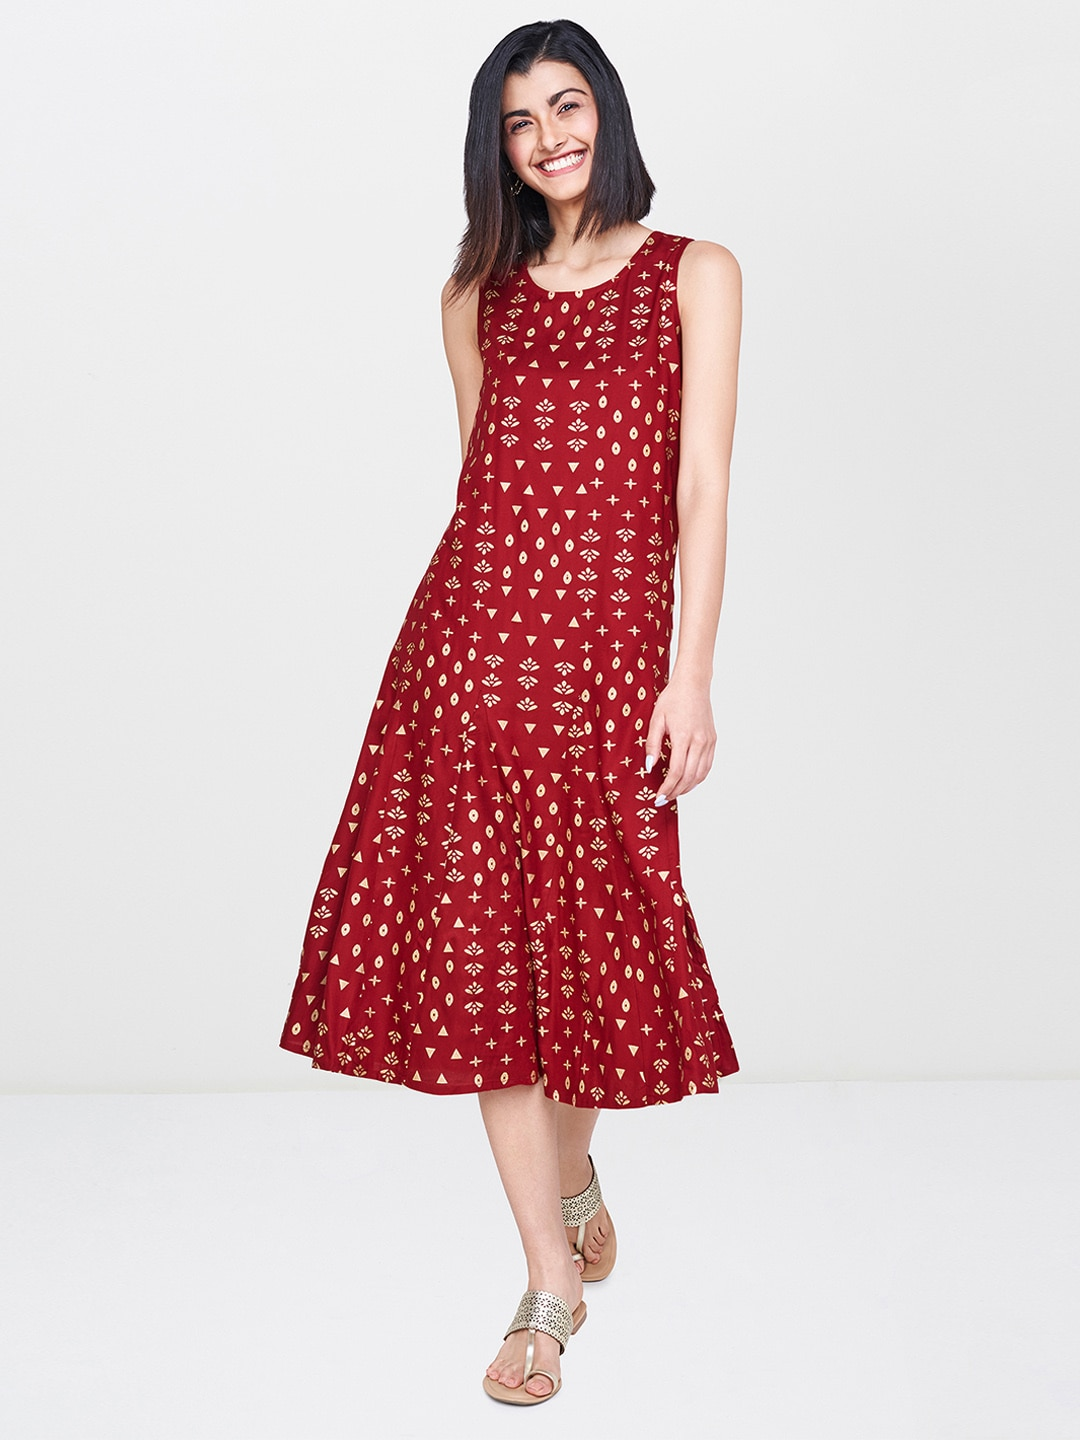 0ee9890096 Red Dress - Buy Trendy Red Colour Dresses Online in India